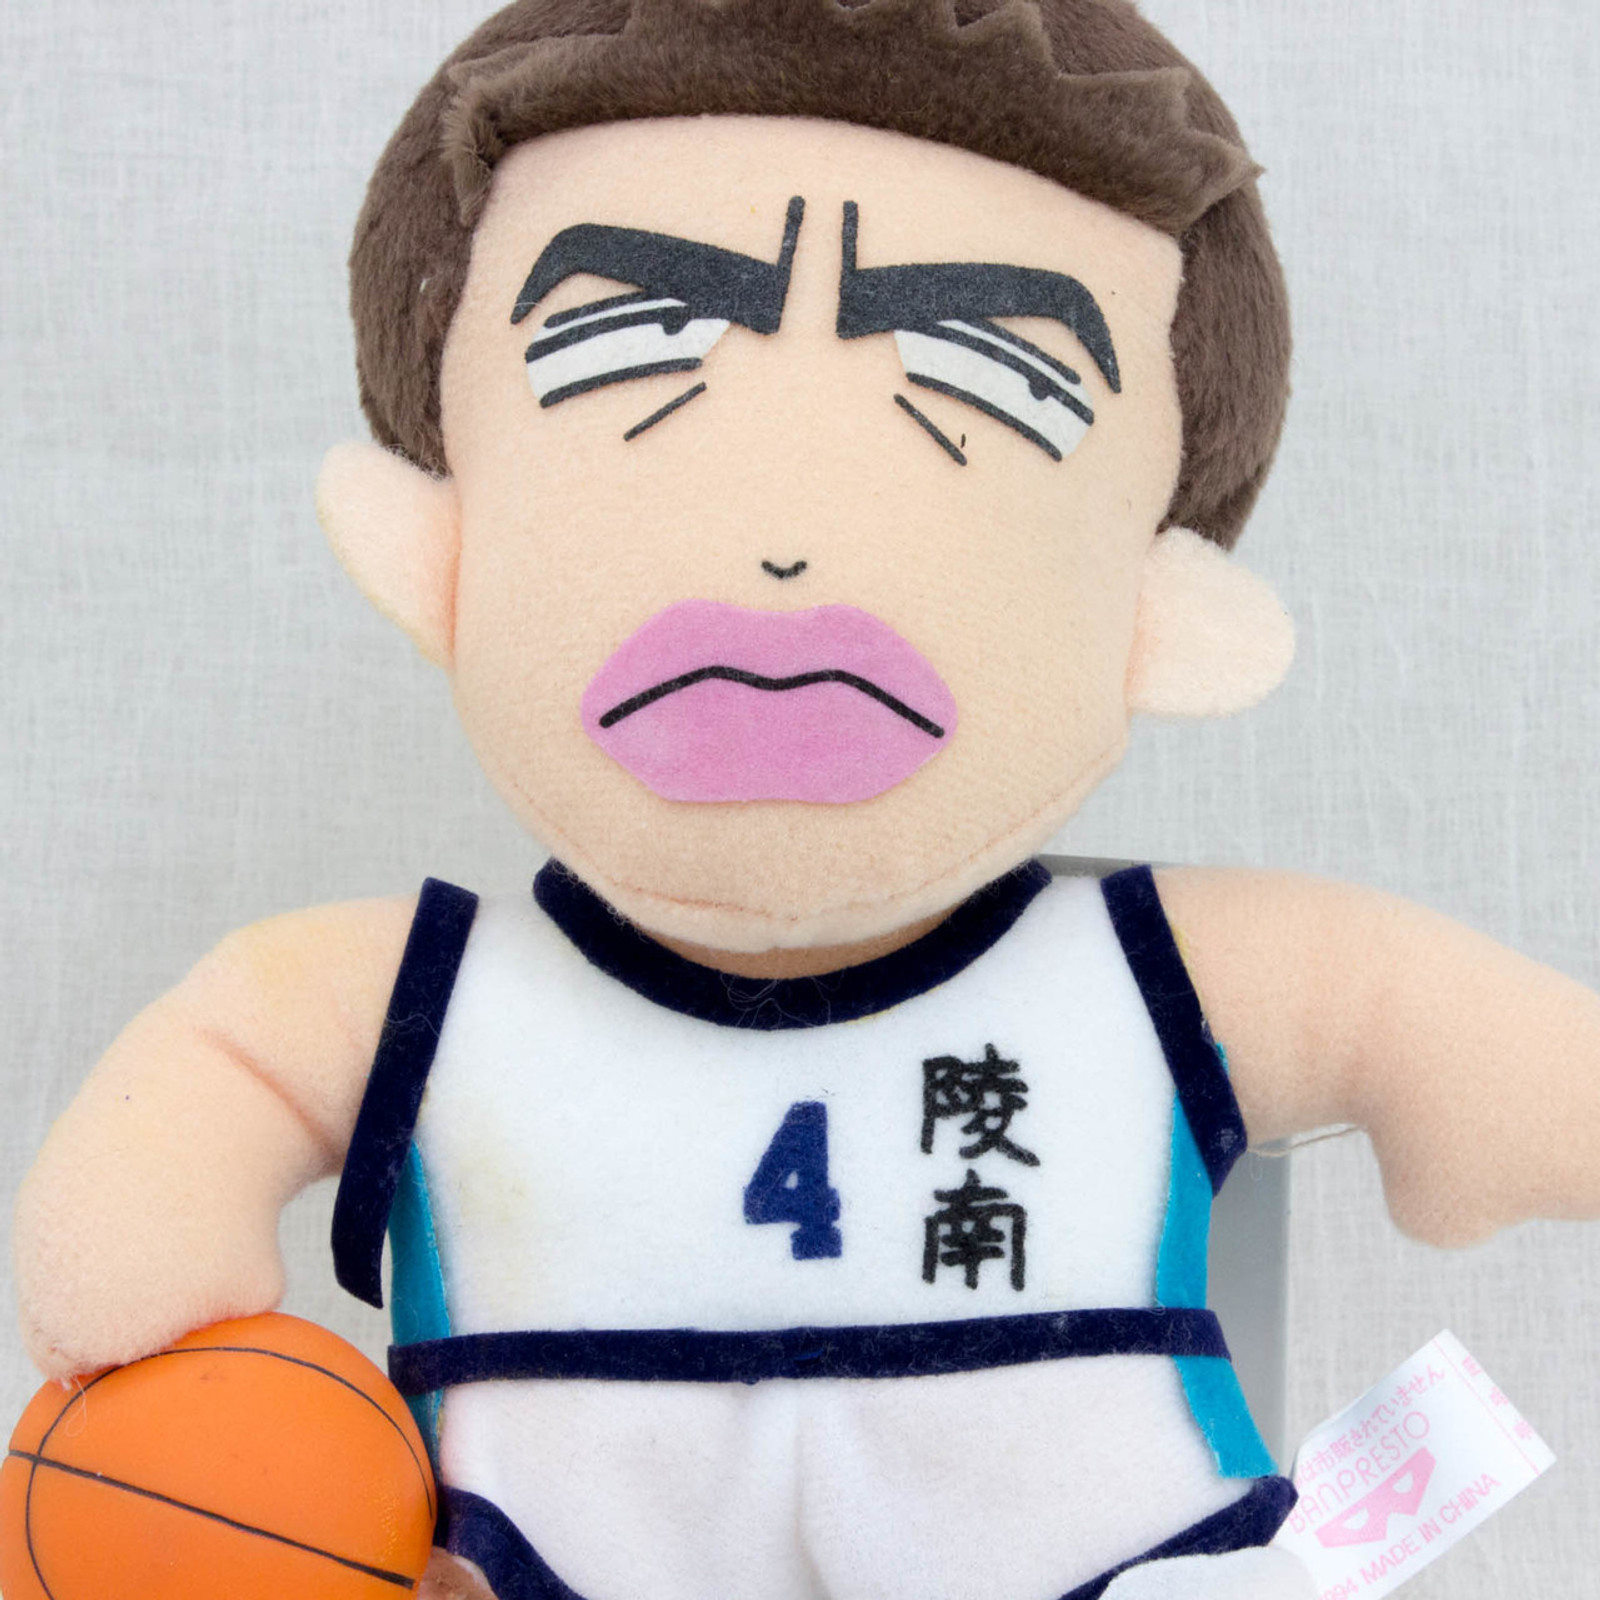 Slam Dunk Ryonan #4 Jun Uozumi Plush Doll JAPAN ANIME MANGA JUMP